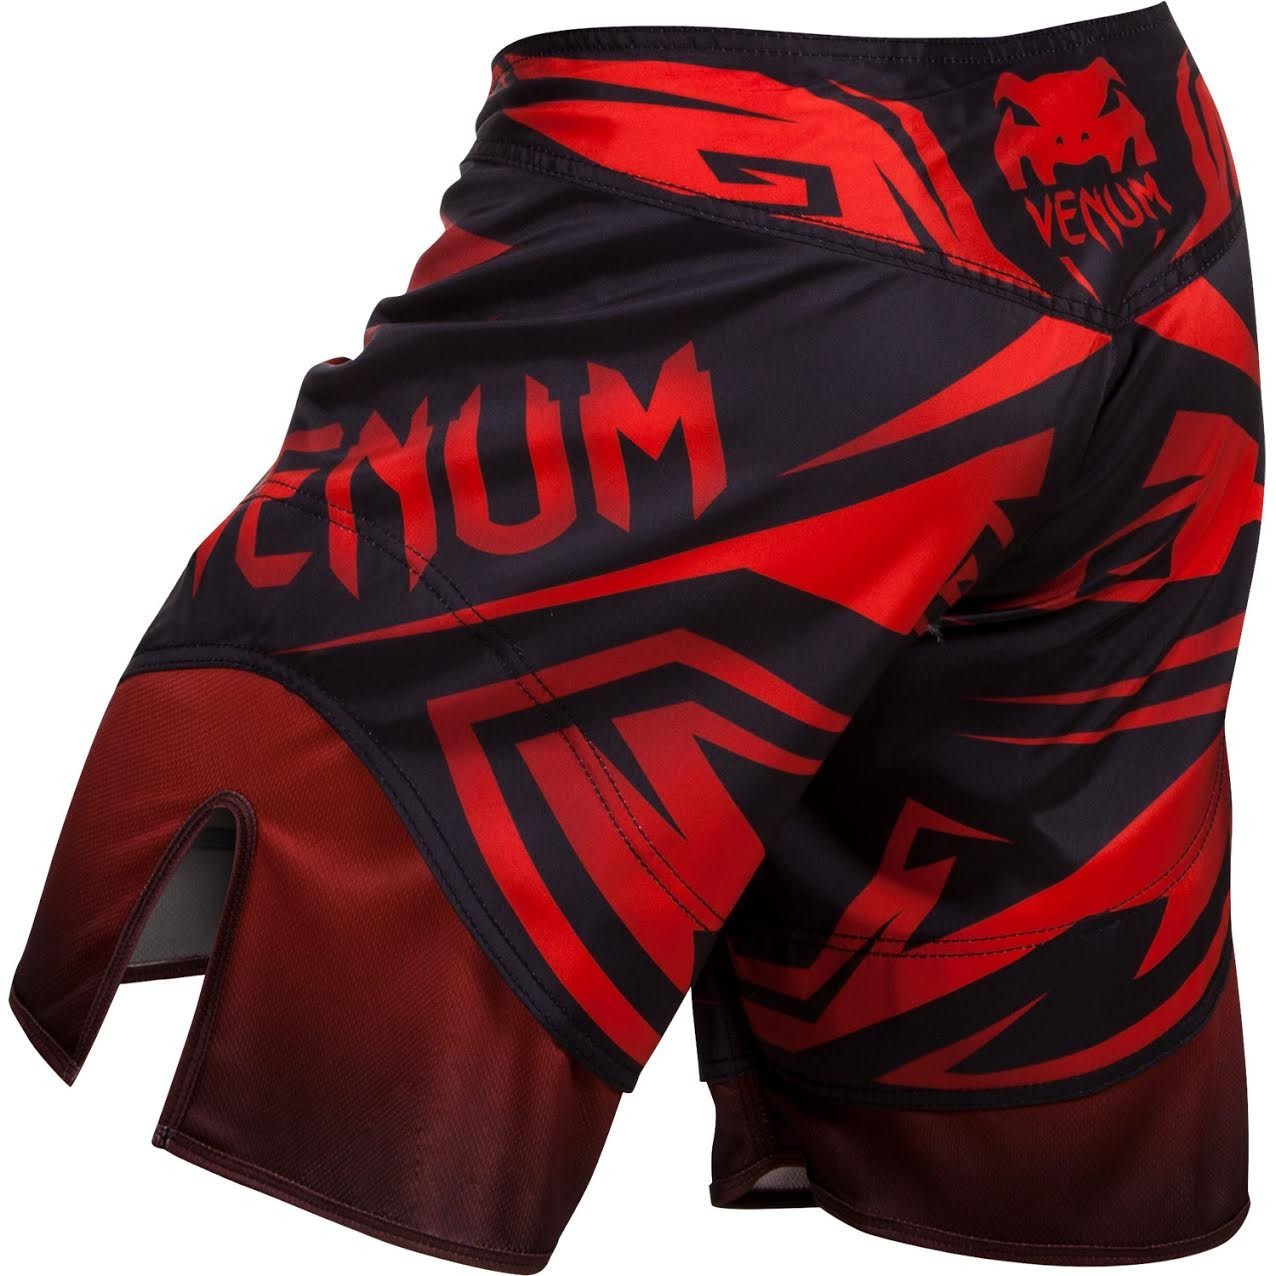 Back view of the Venum Shadow Hunter Fight Short in Red and Black.  Available at www.thejiujitsushop.com.  Premium fight shorts shadow hunter  enjoy Free Shipping from The Jiu Jitsu Shop